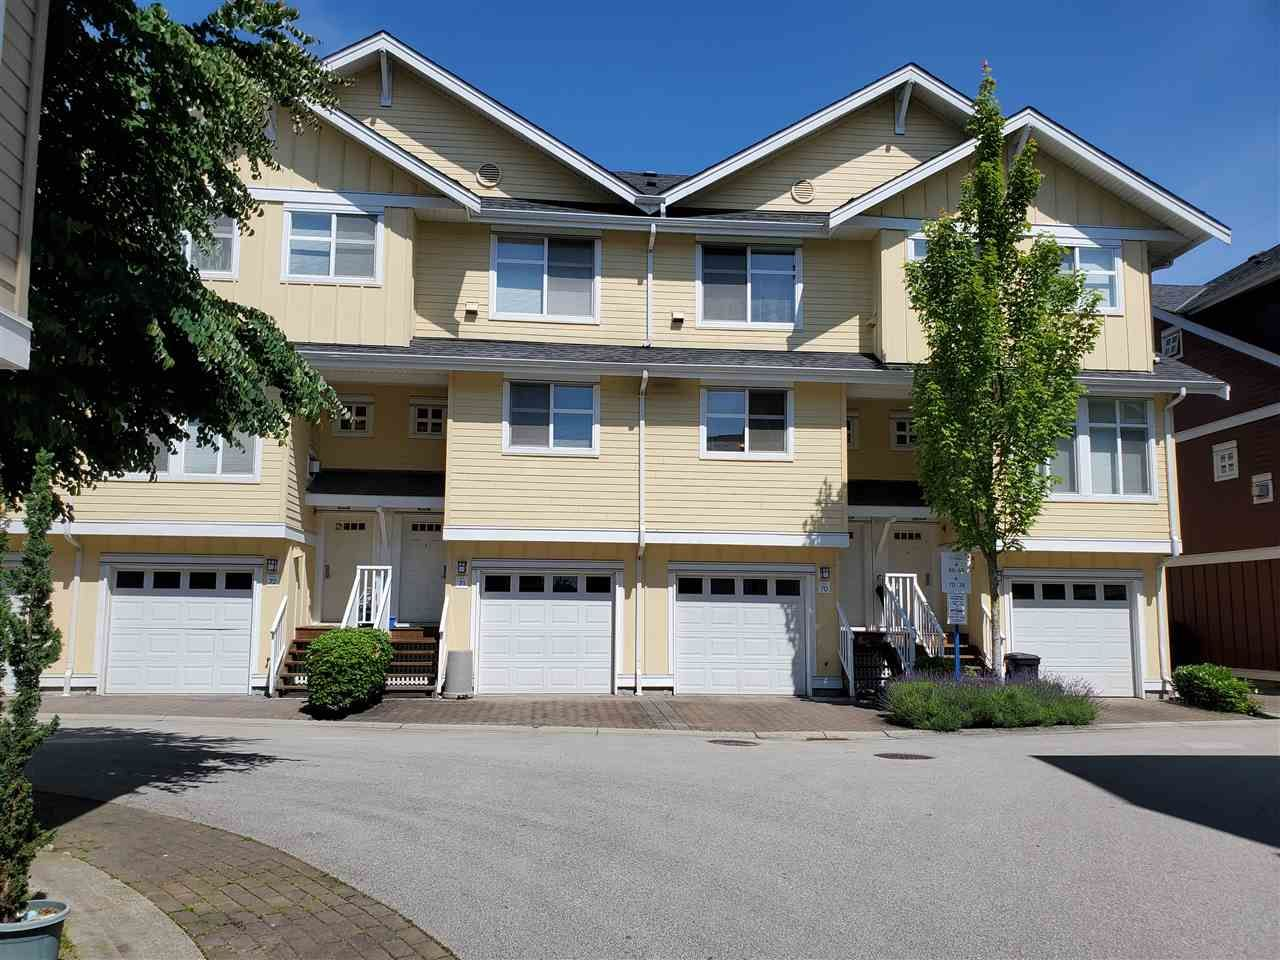 """Main Photo: 70 935 EWEN Avenue in New Westminster: Queensborough Townhouse for sale in """"COOPERS LANDING"""" : MLS®# R2466265"""